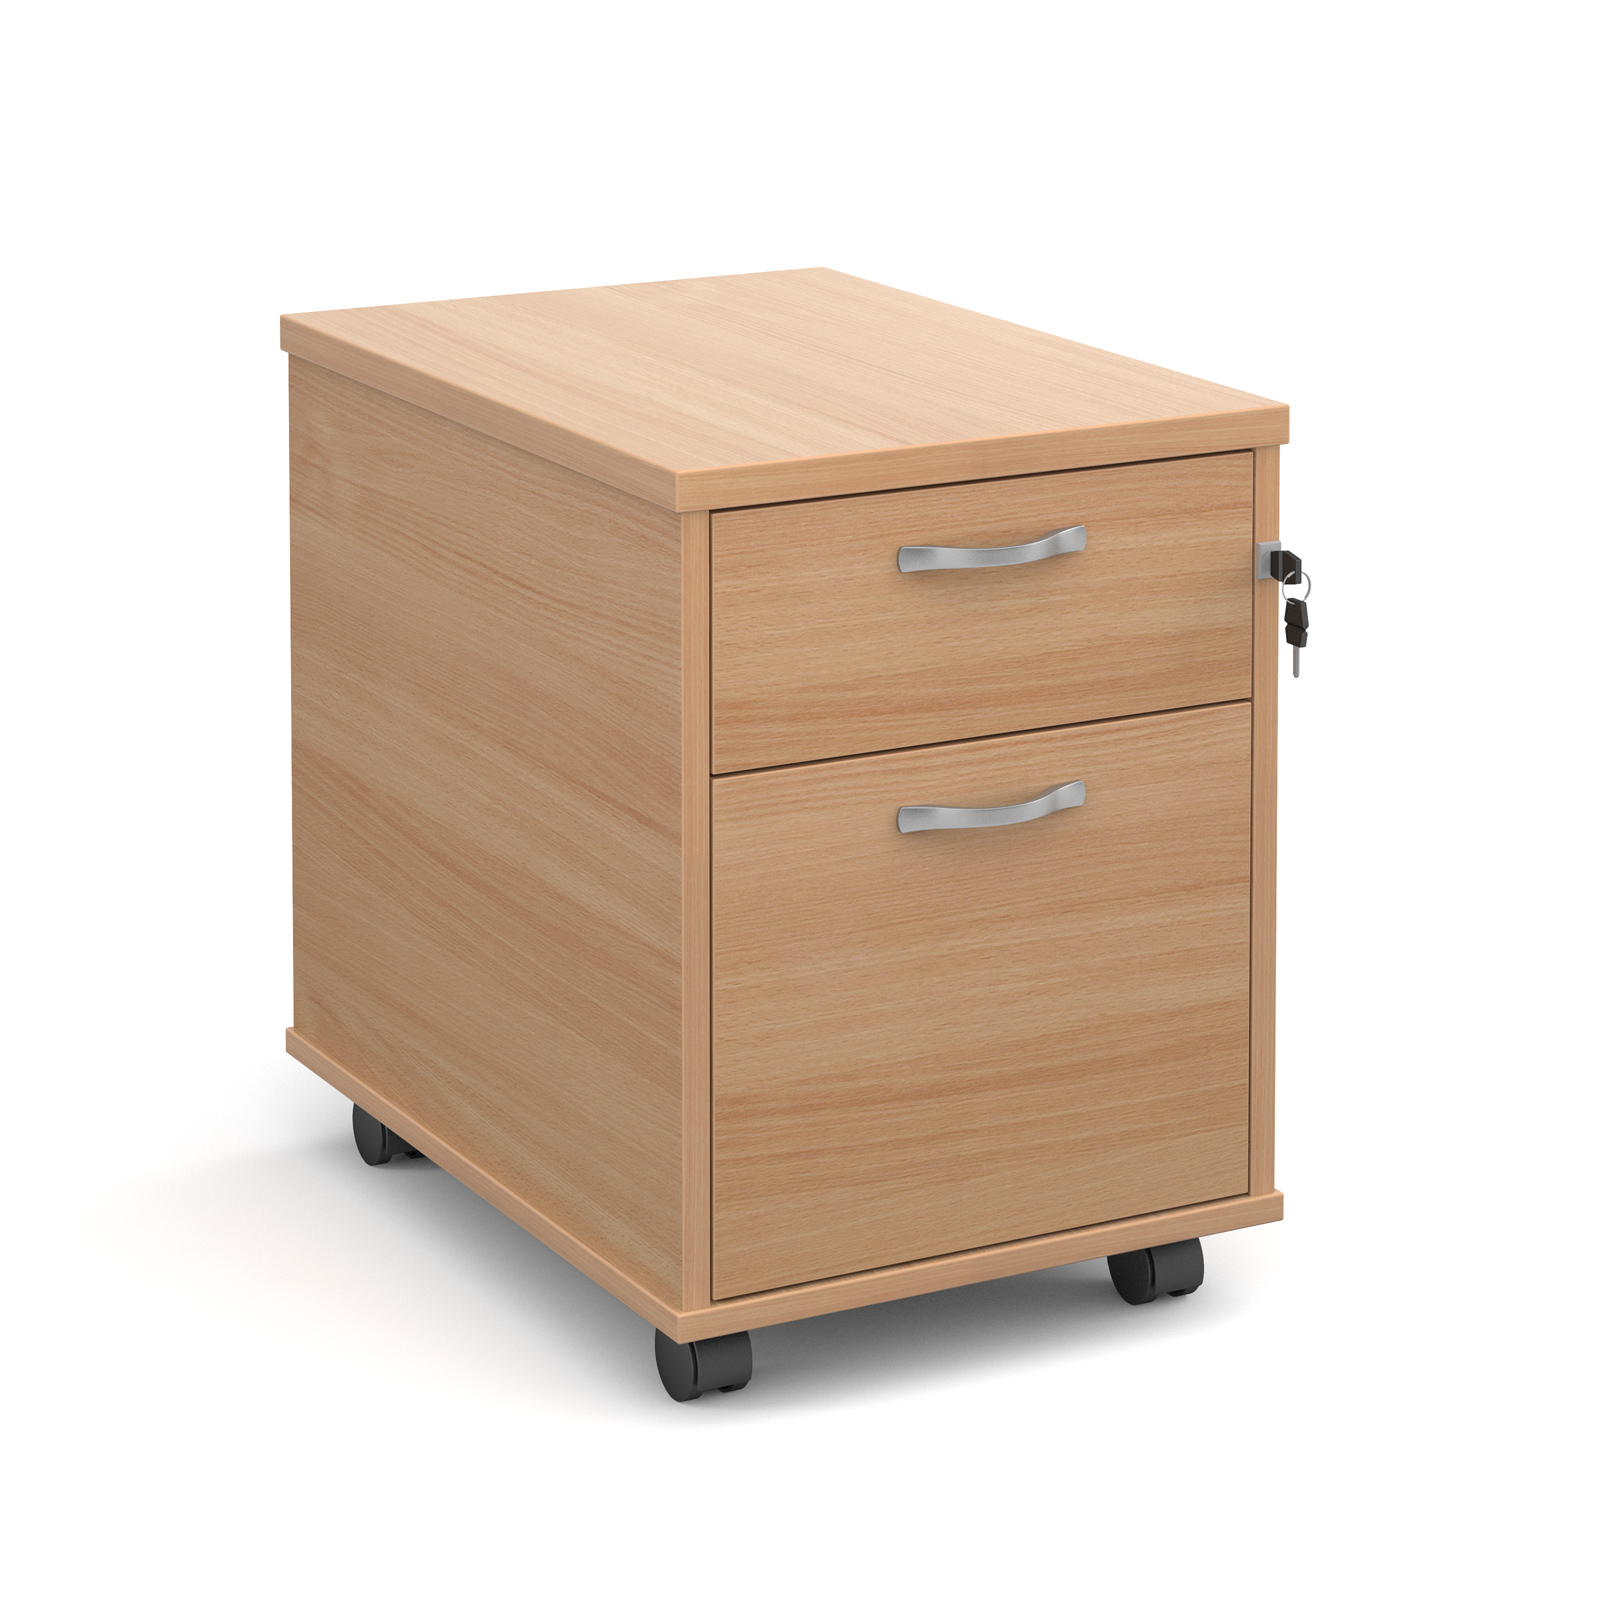 2 Drawer Mobile Pedestal in beech